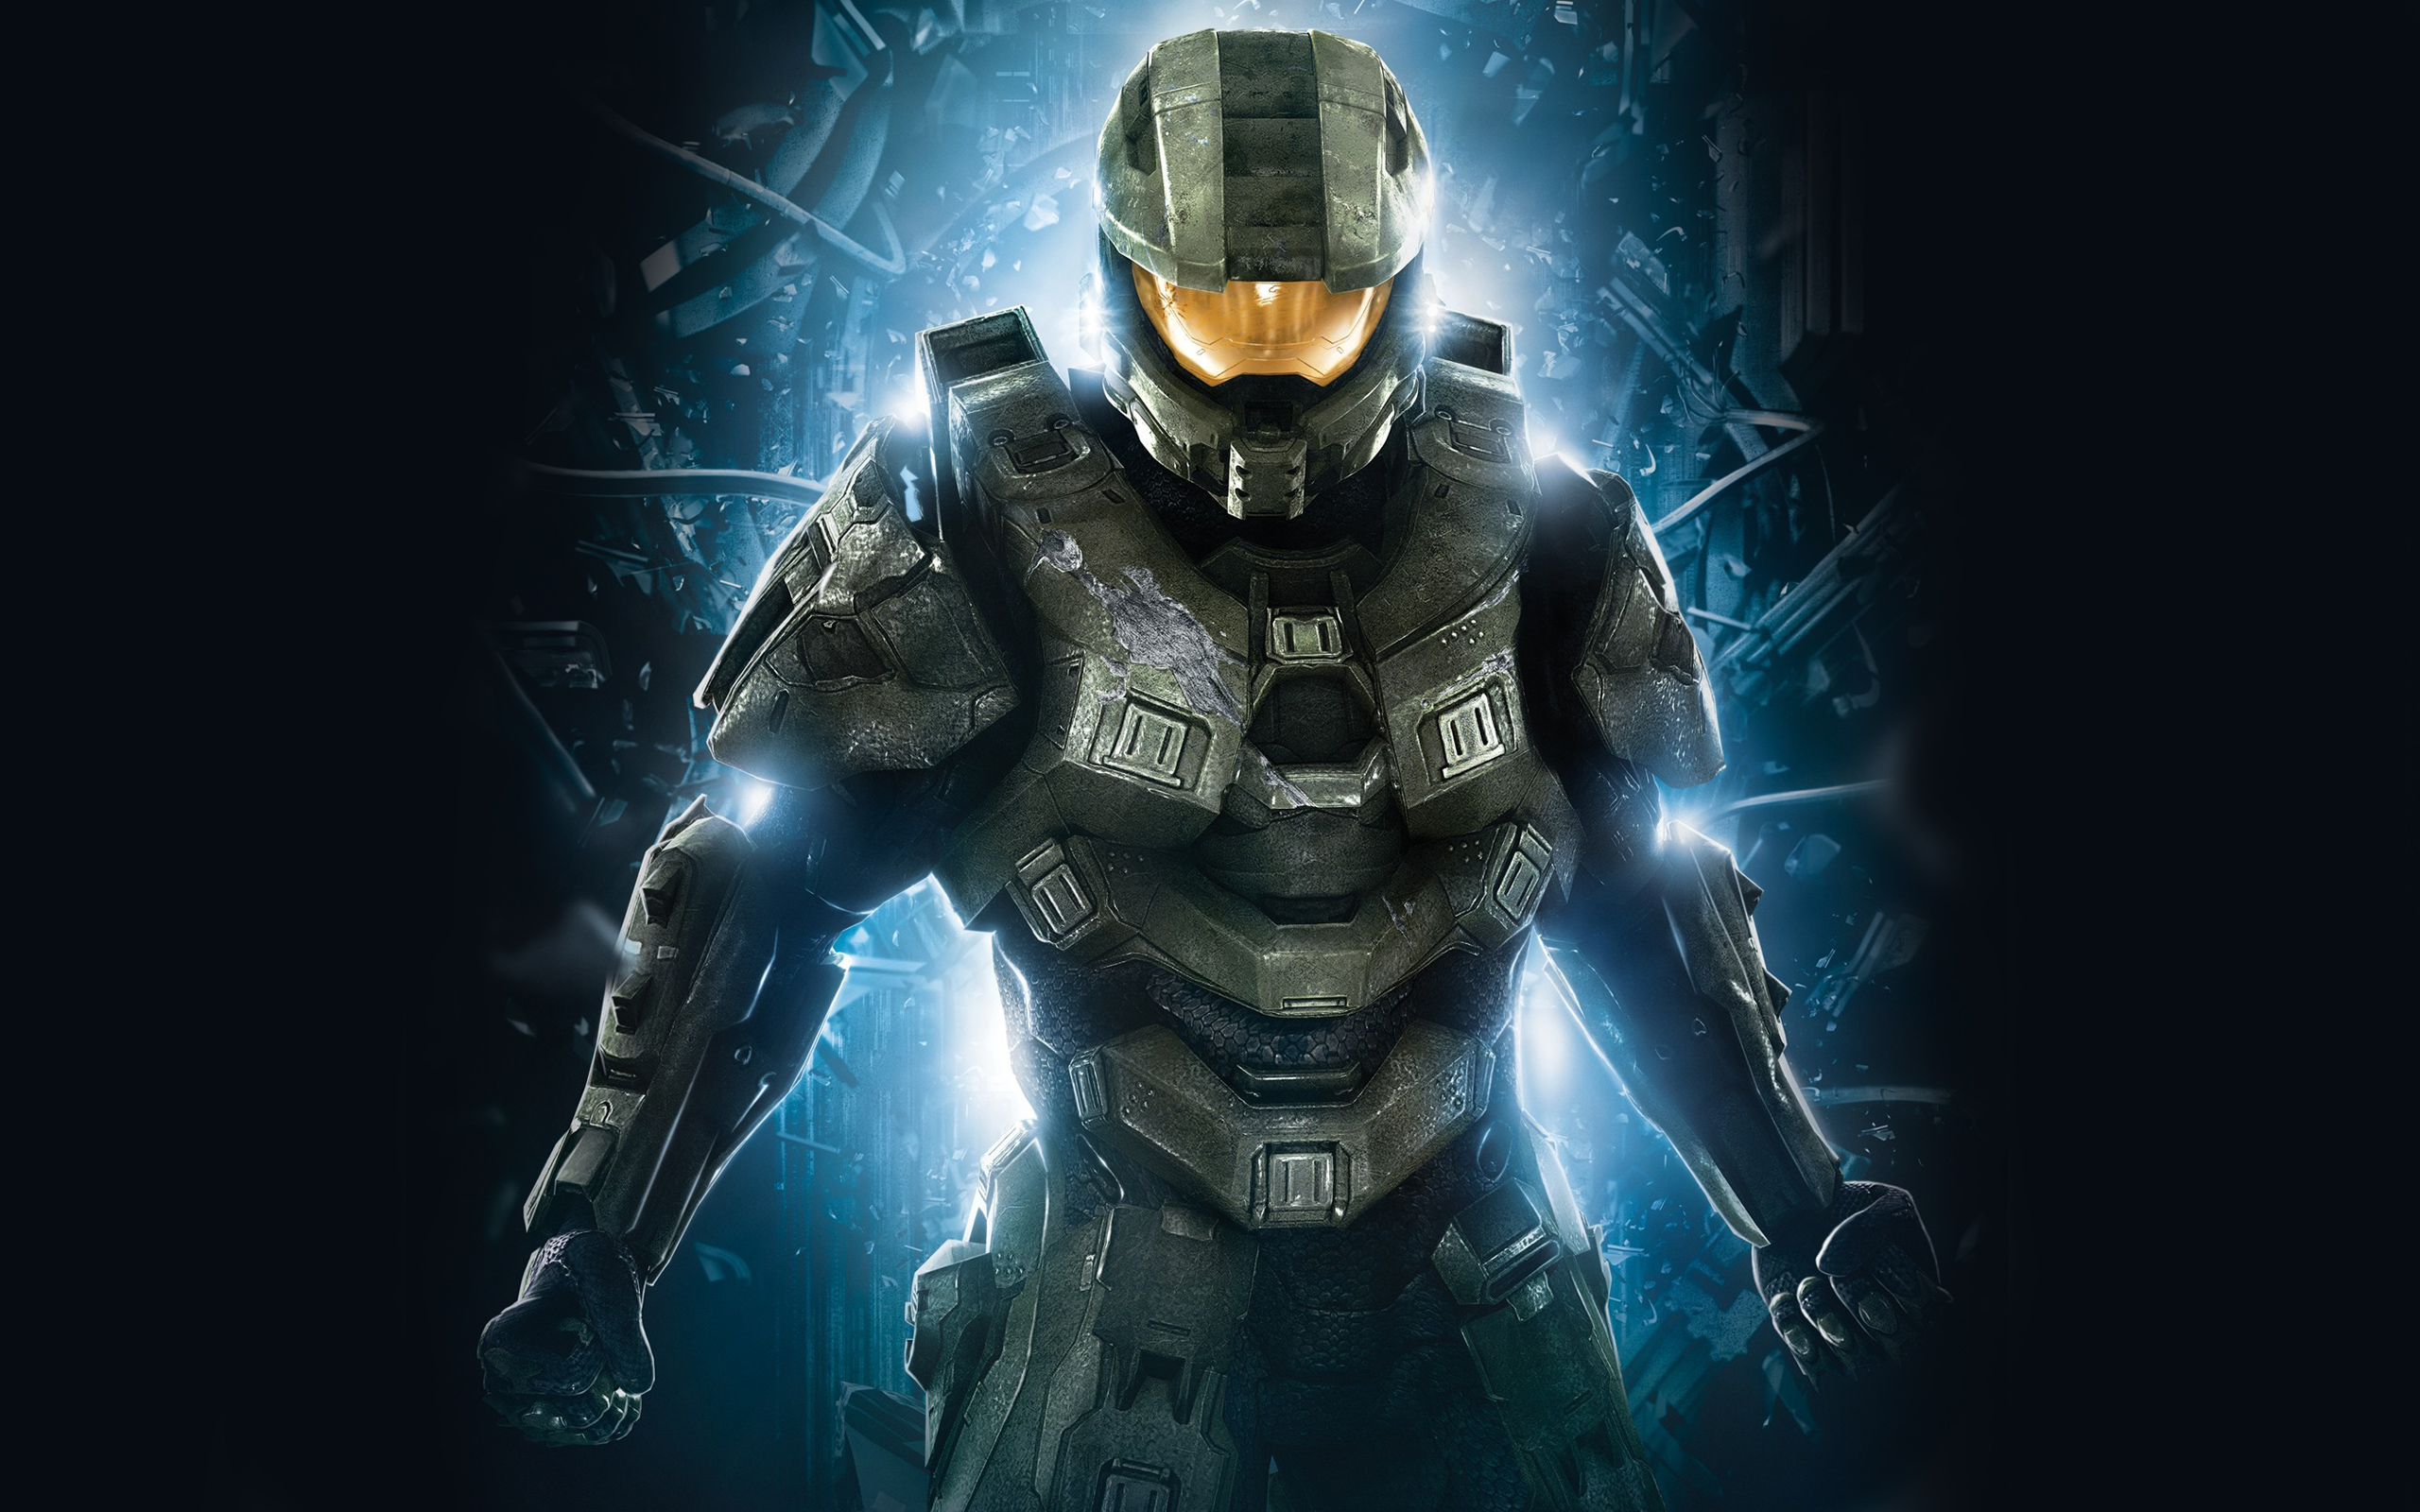 Master Chief in Halo 4 Wallpapers HD Wallpapers 2560x1600